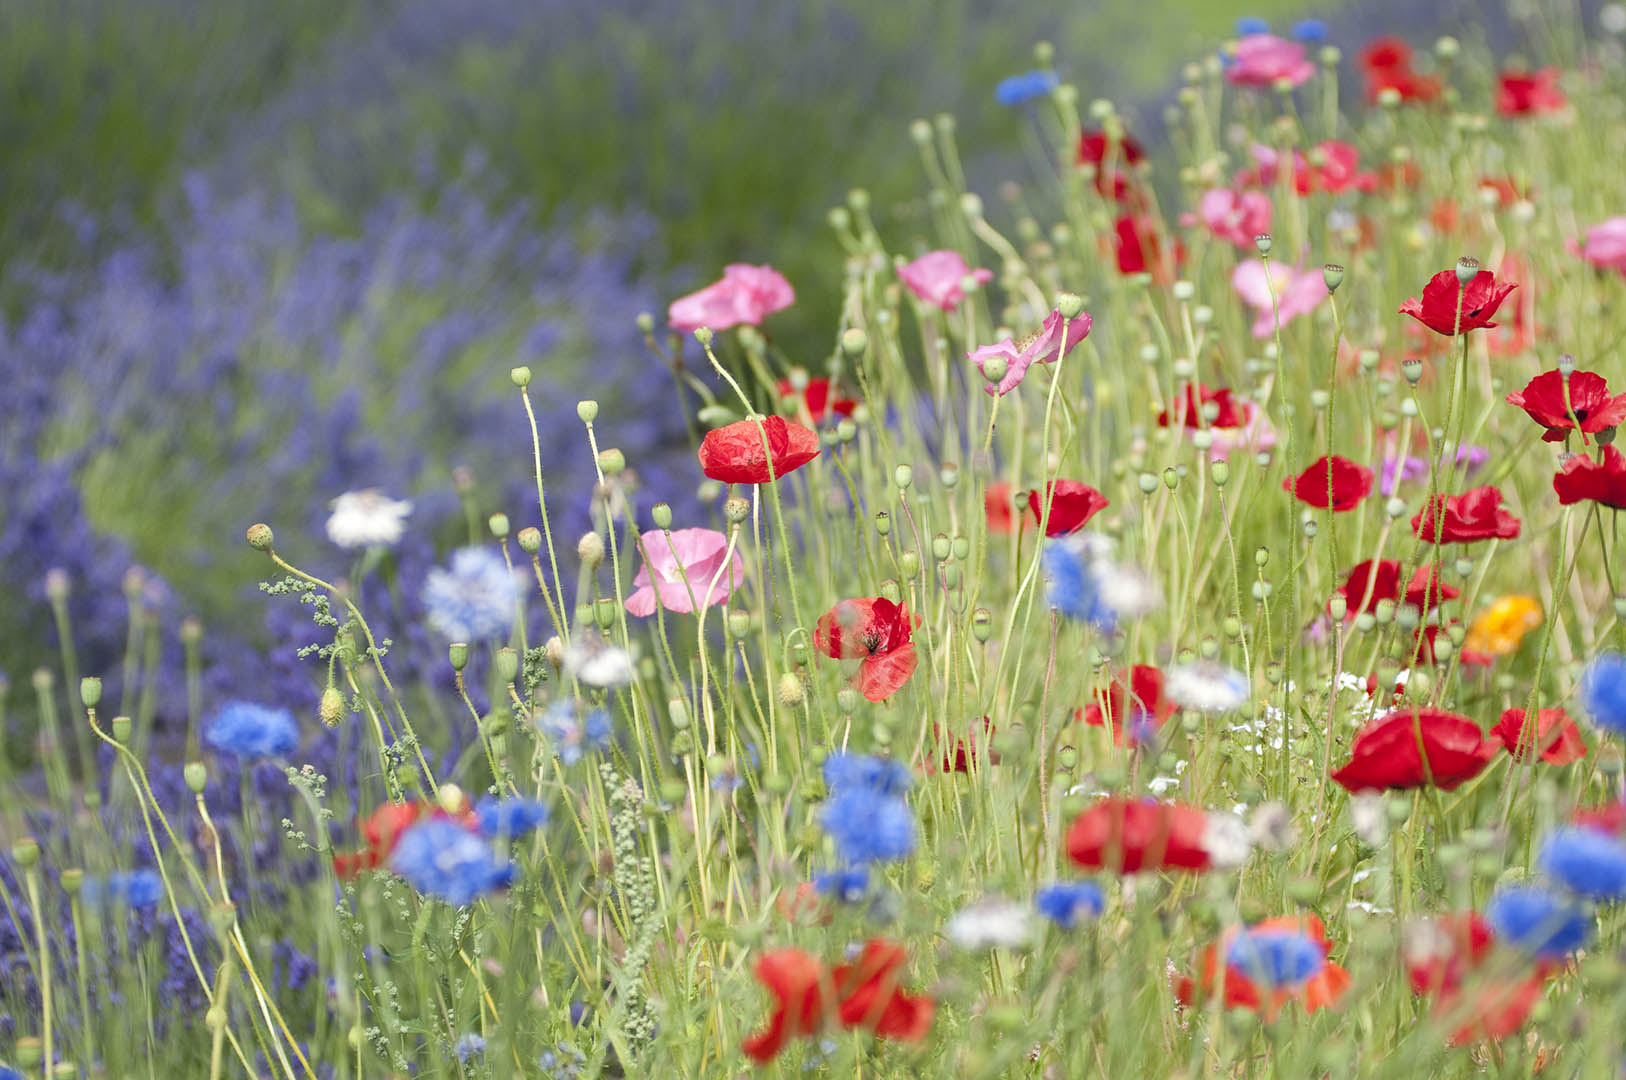 Mixed poppies near field of lavender in summer